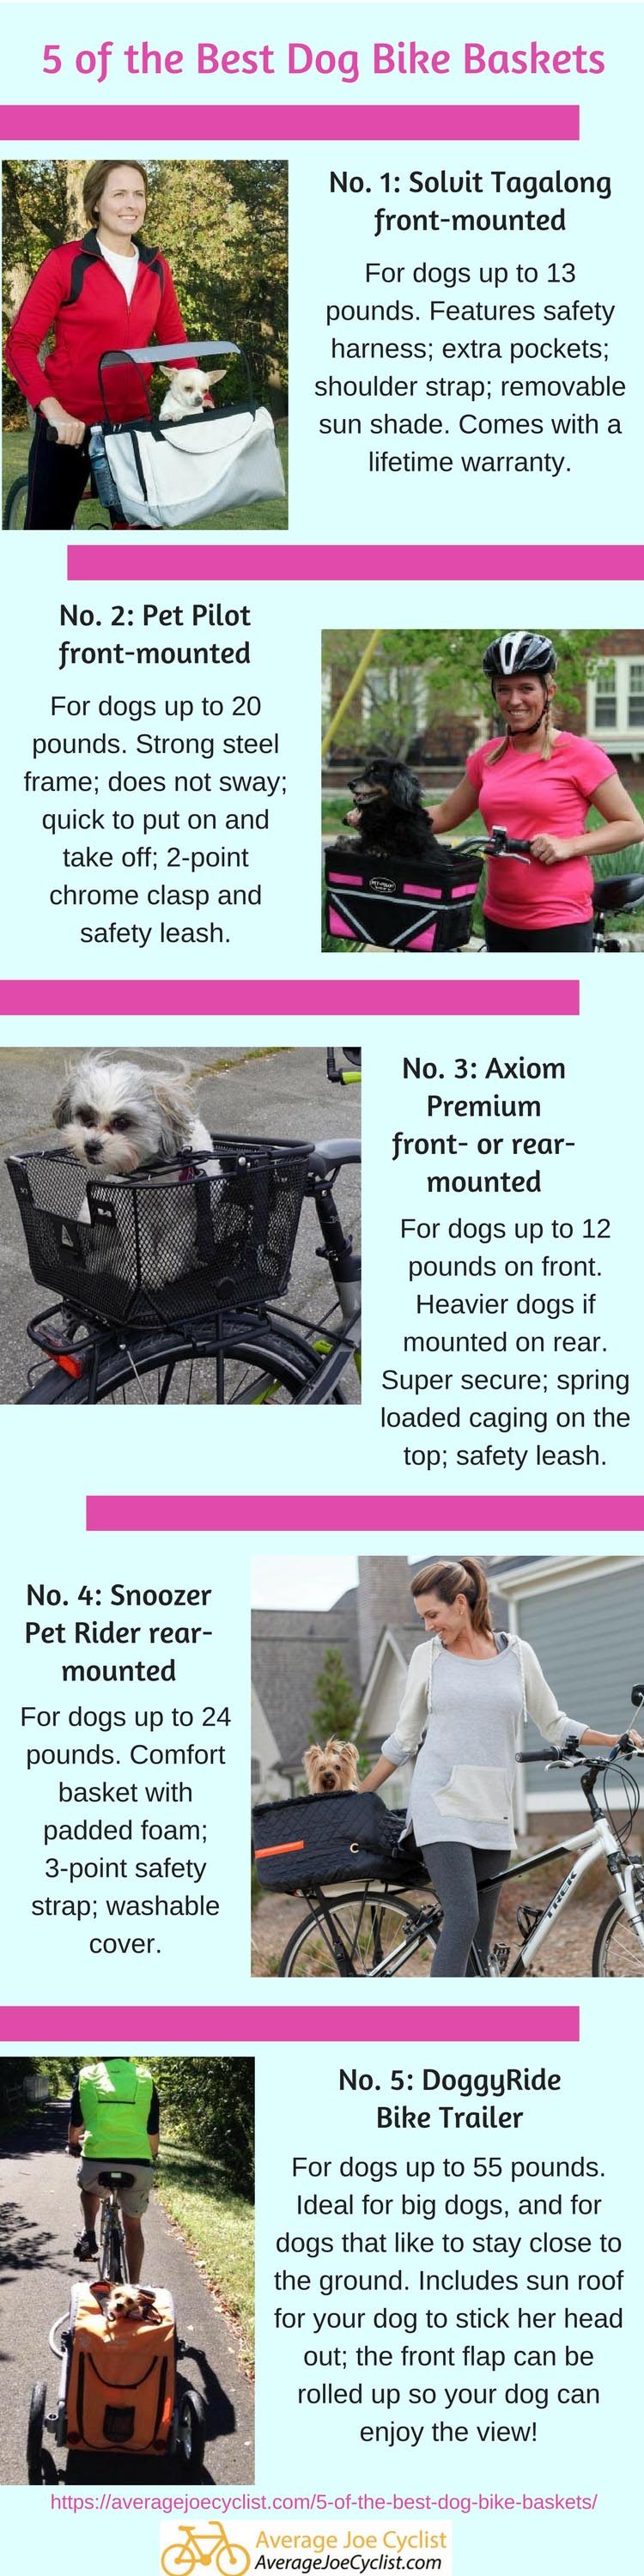 5 of the best dog bike baskets compared